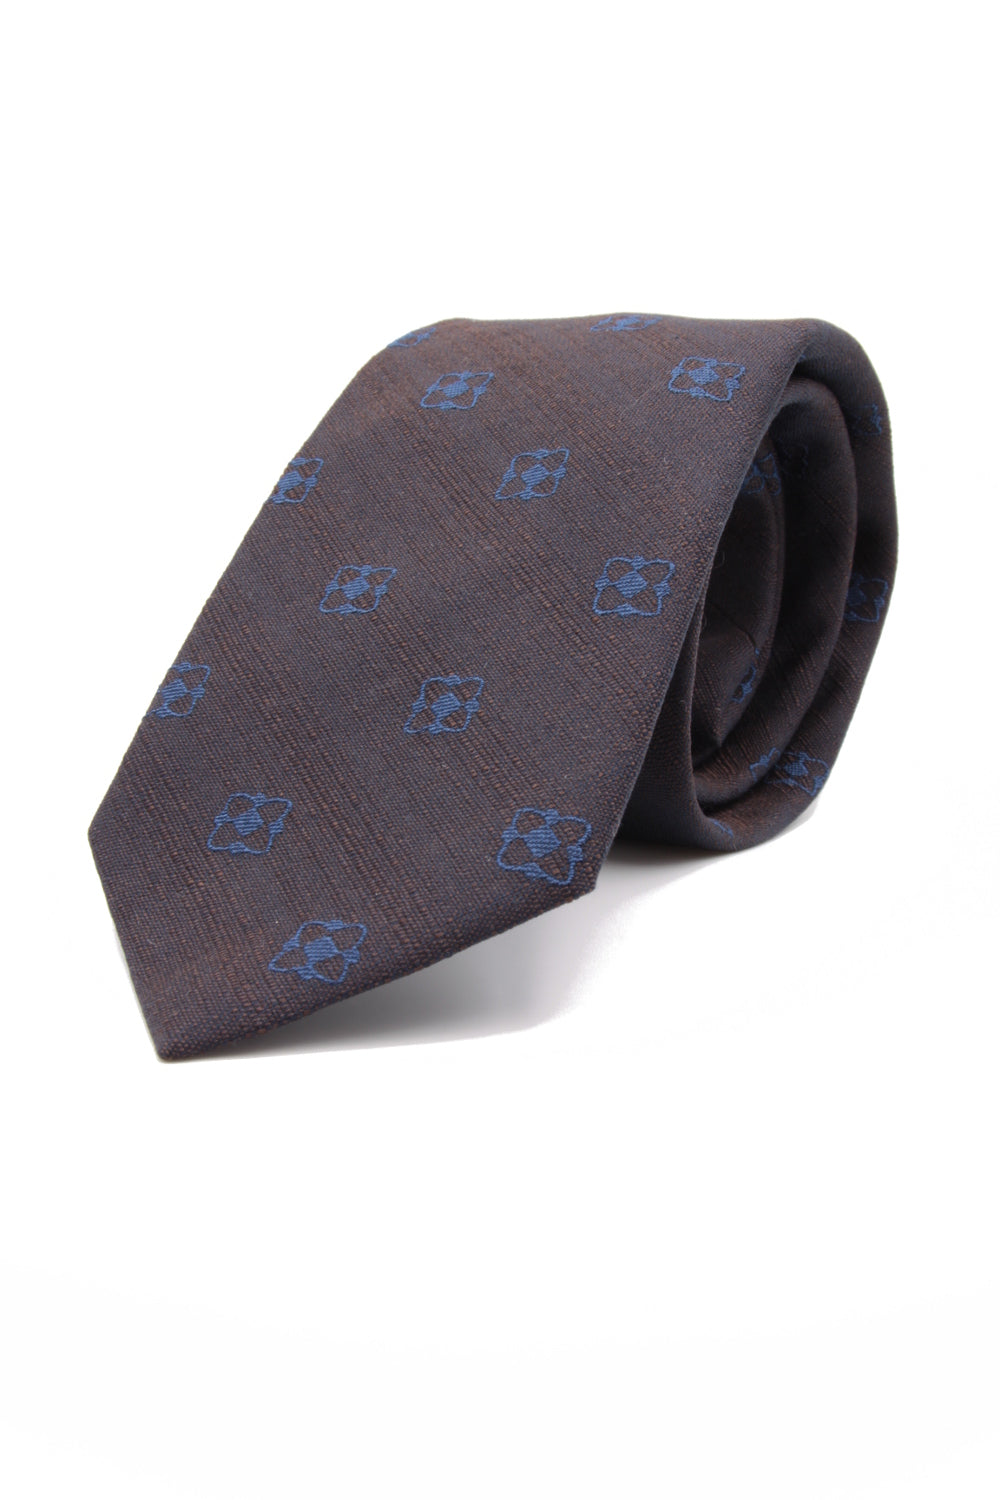 Brown, navy blue flower tie